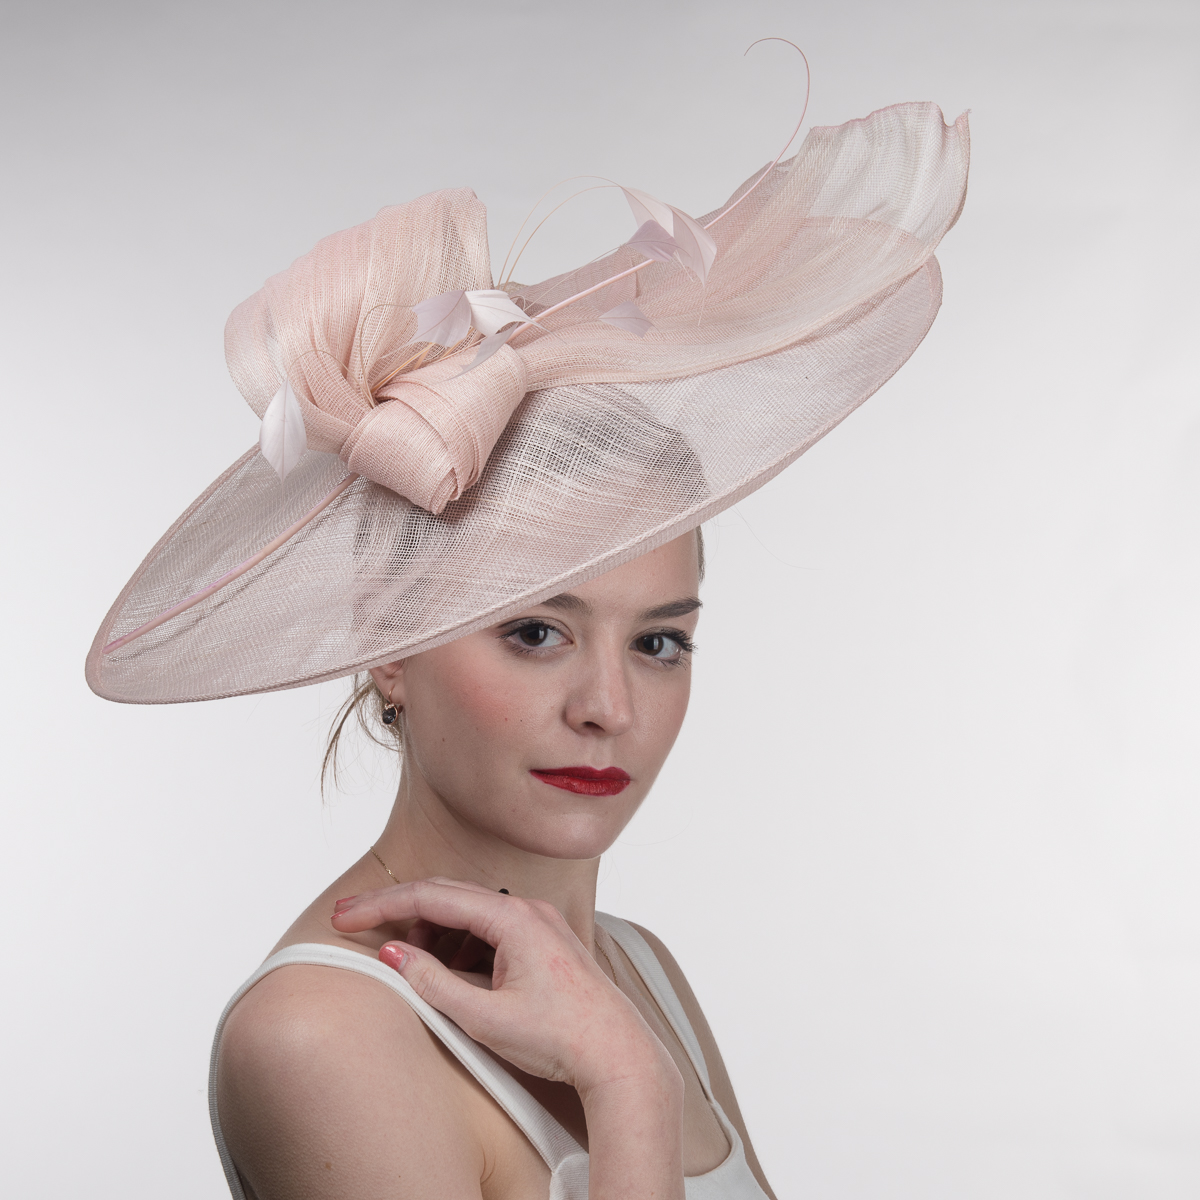 Pale Pink Bow Saucer Headband Fascinator Cocktail Hats-102063-PPK- Sun  Yorkos  d11ca6e4912